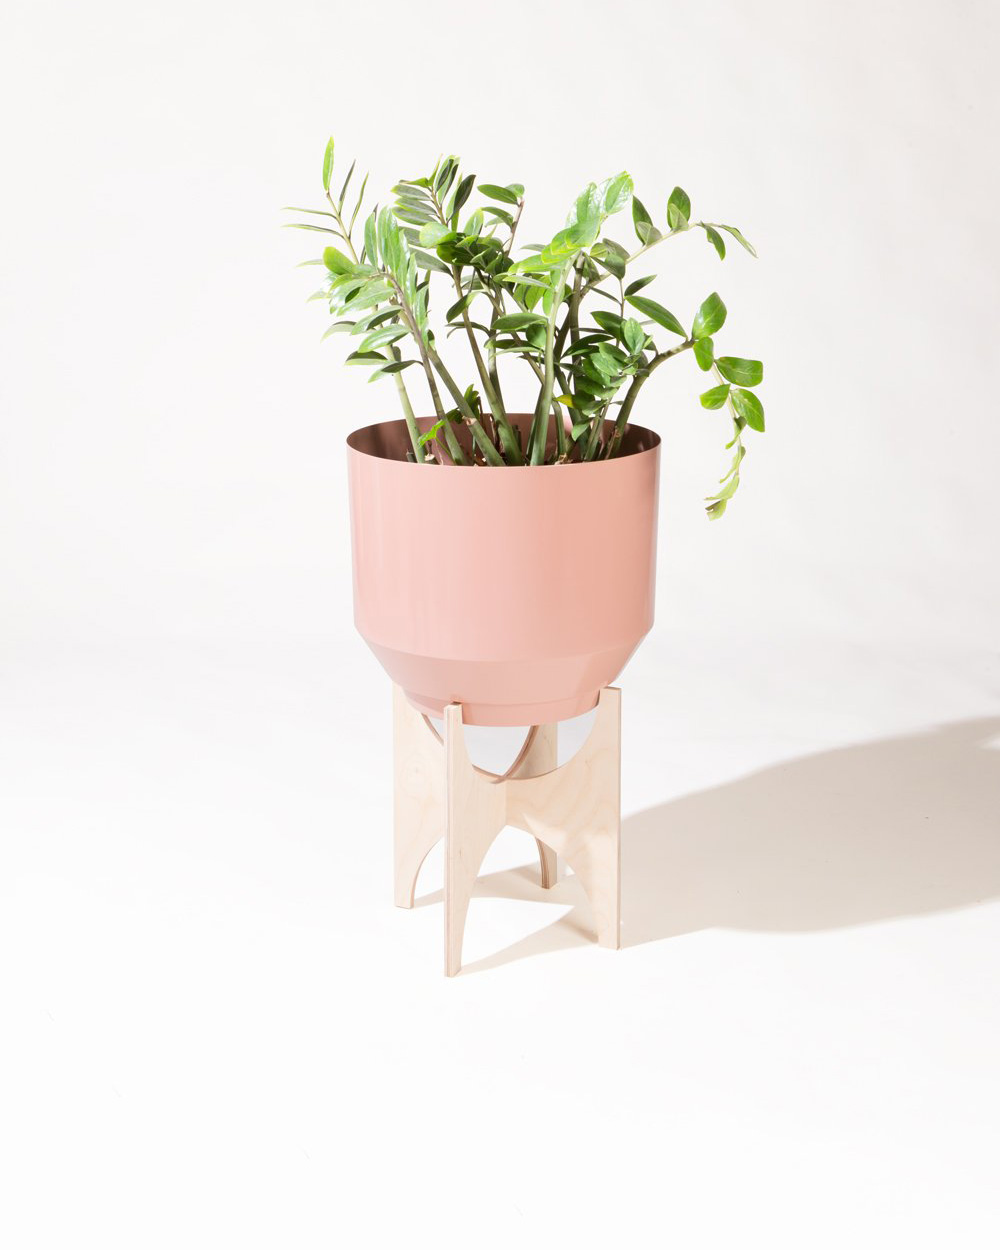 Yield Spun Planter Peach and Natural Birch Planter Stand